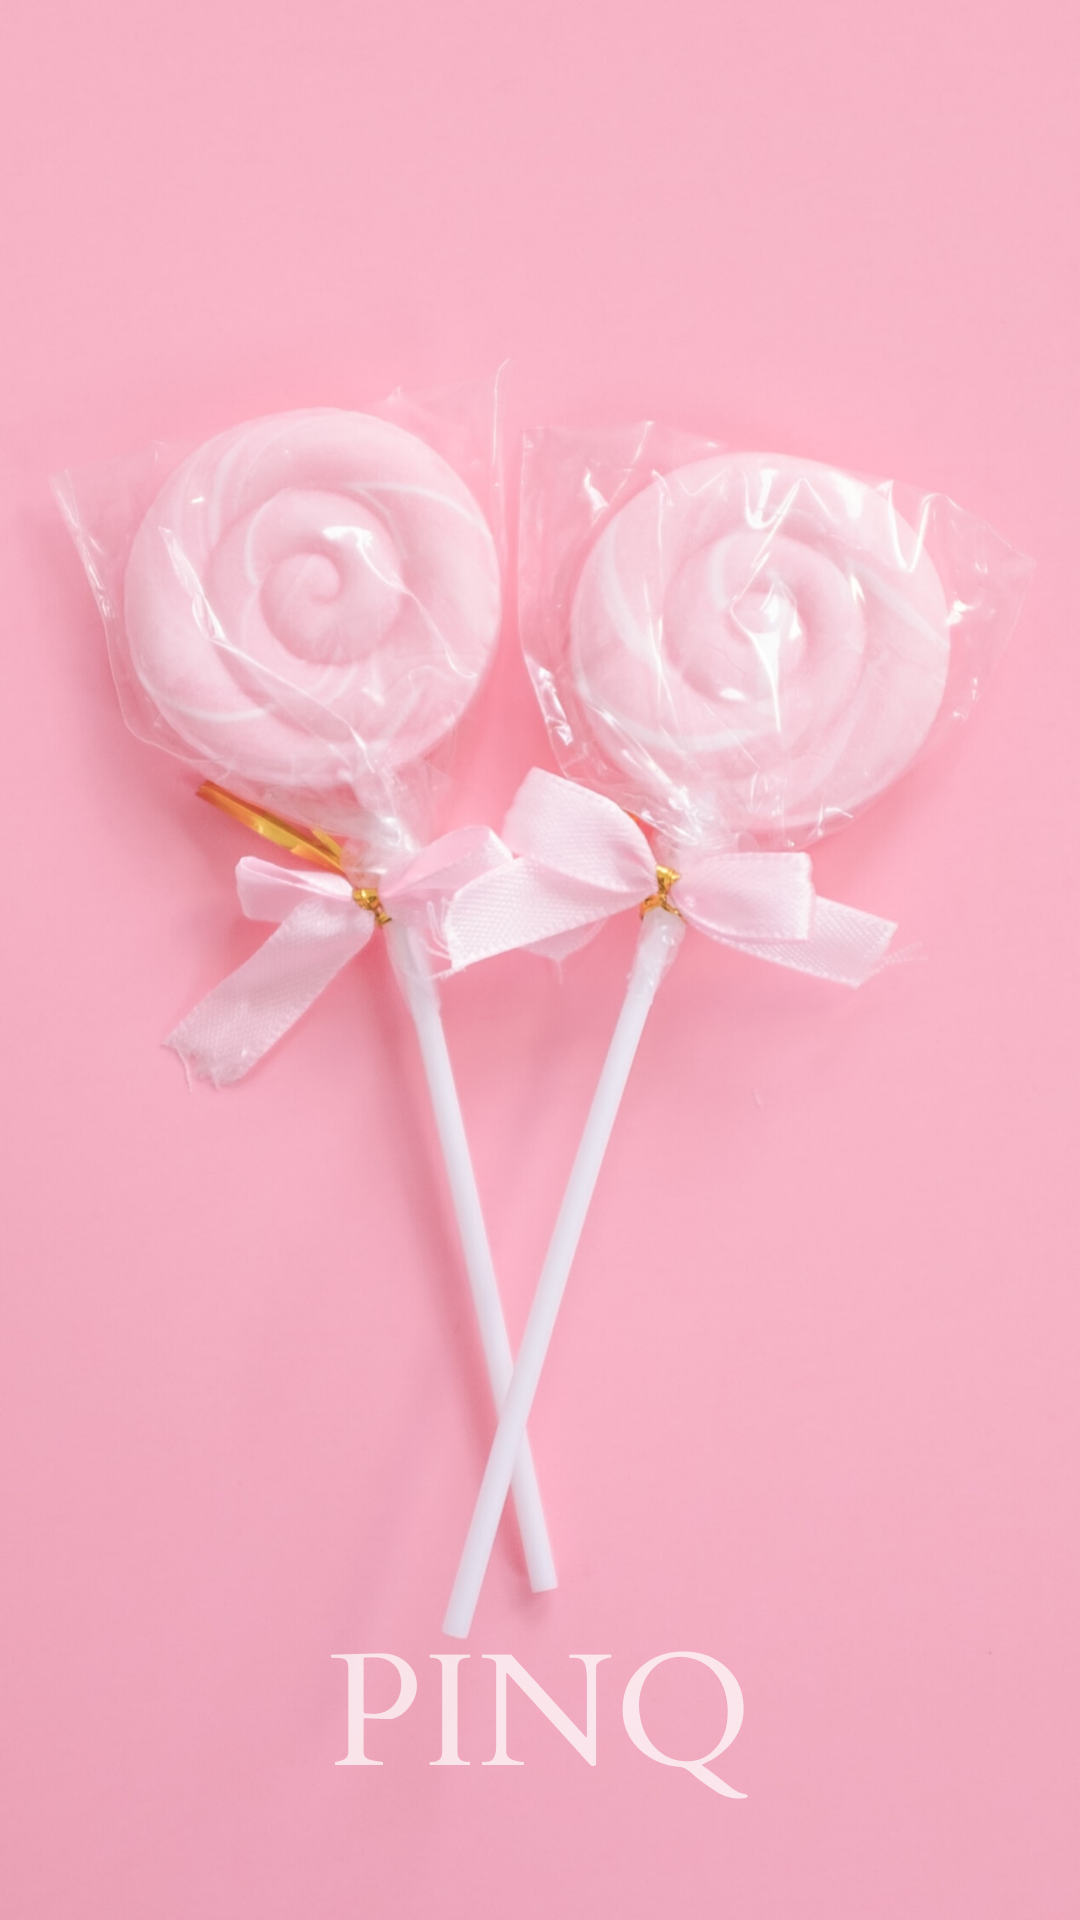 Pink Lollipops Pink Wallpaper For Iphone Pink Wallpaper Iphone Pink Aesthetic Pink Wallpaper Mobile